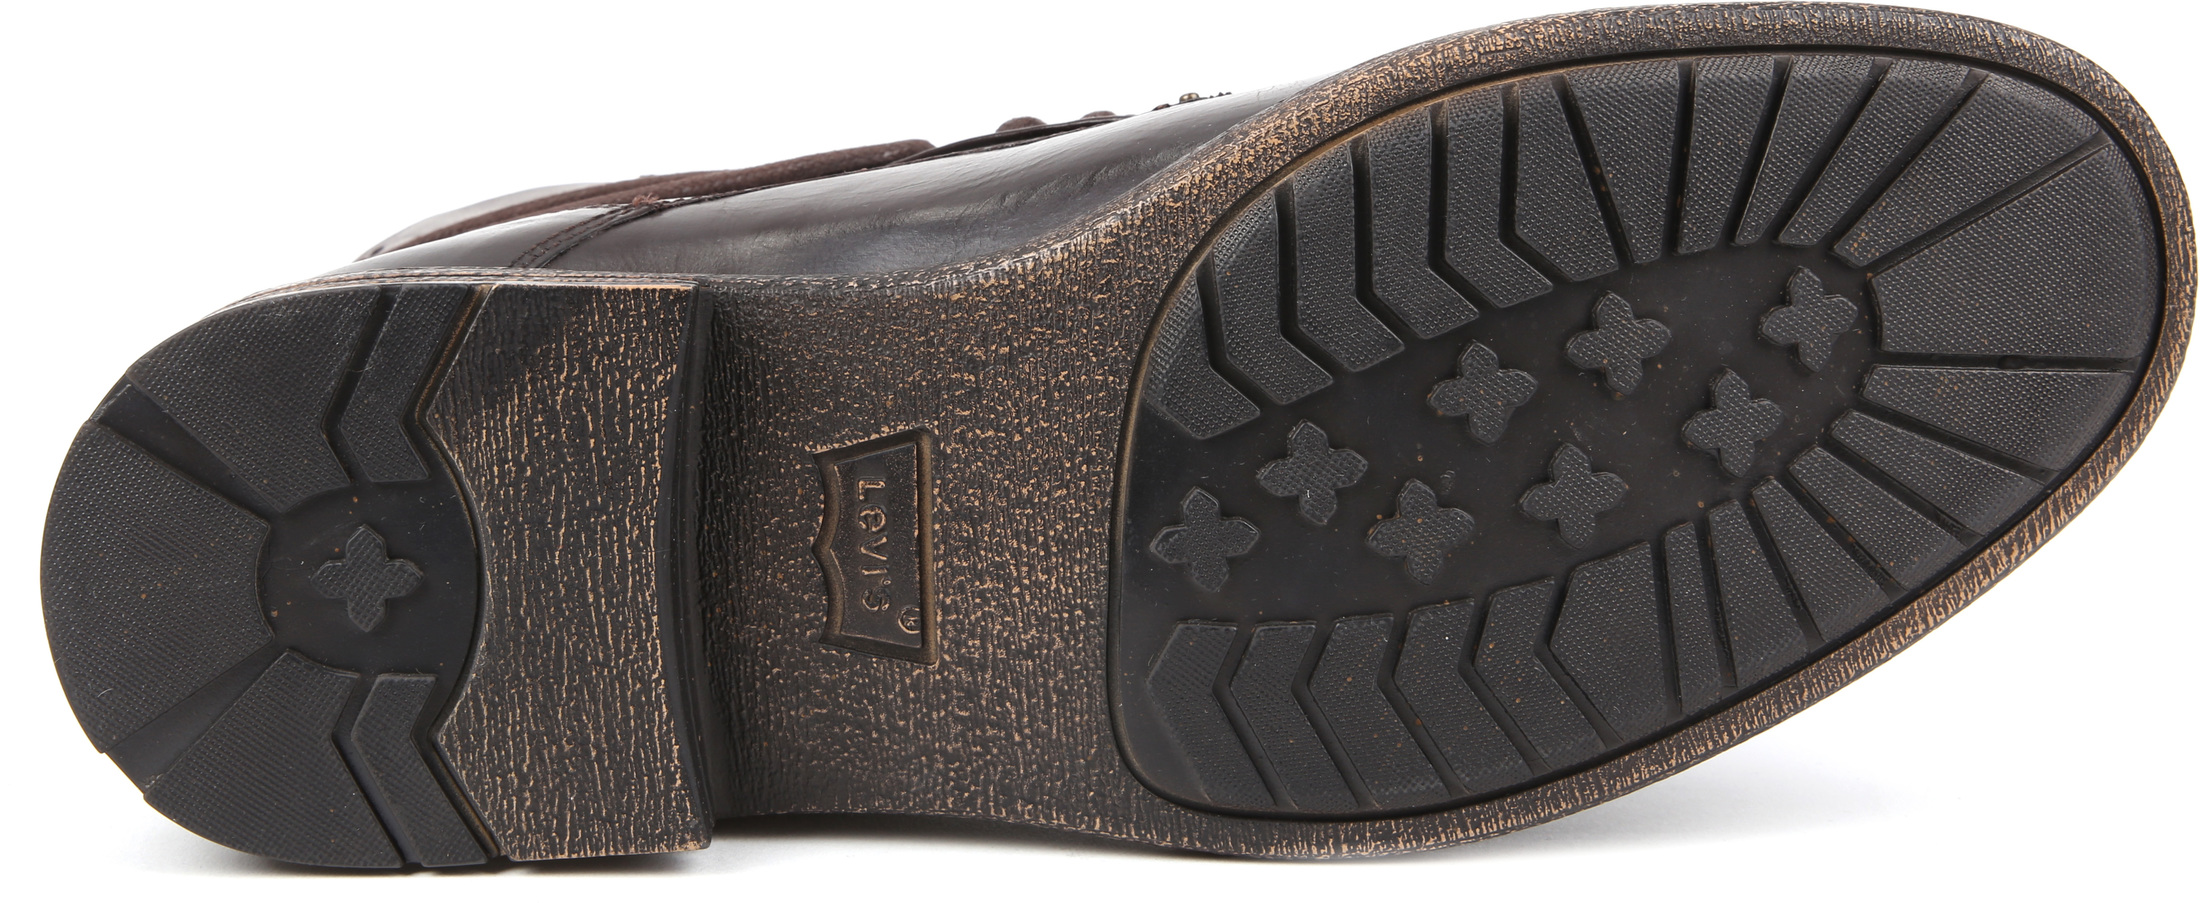 Levi's Boots Emerson Dark Brown Lether foto 4